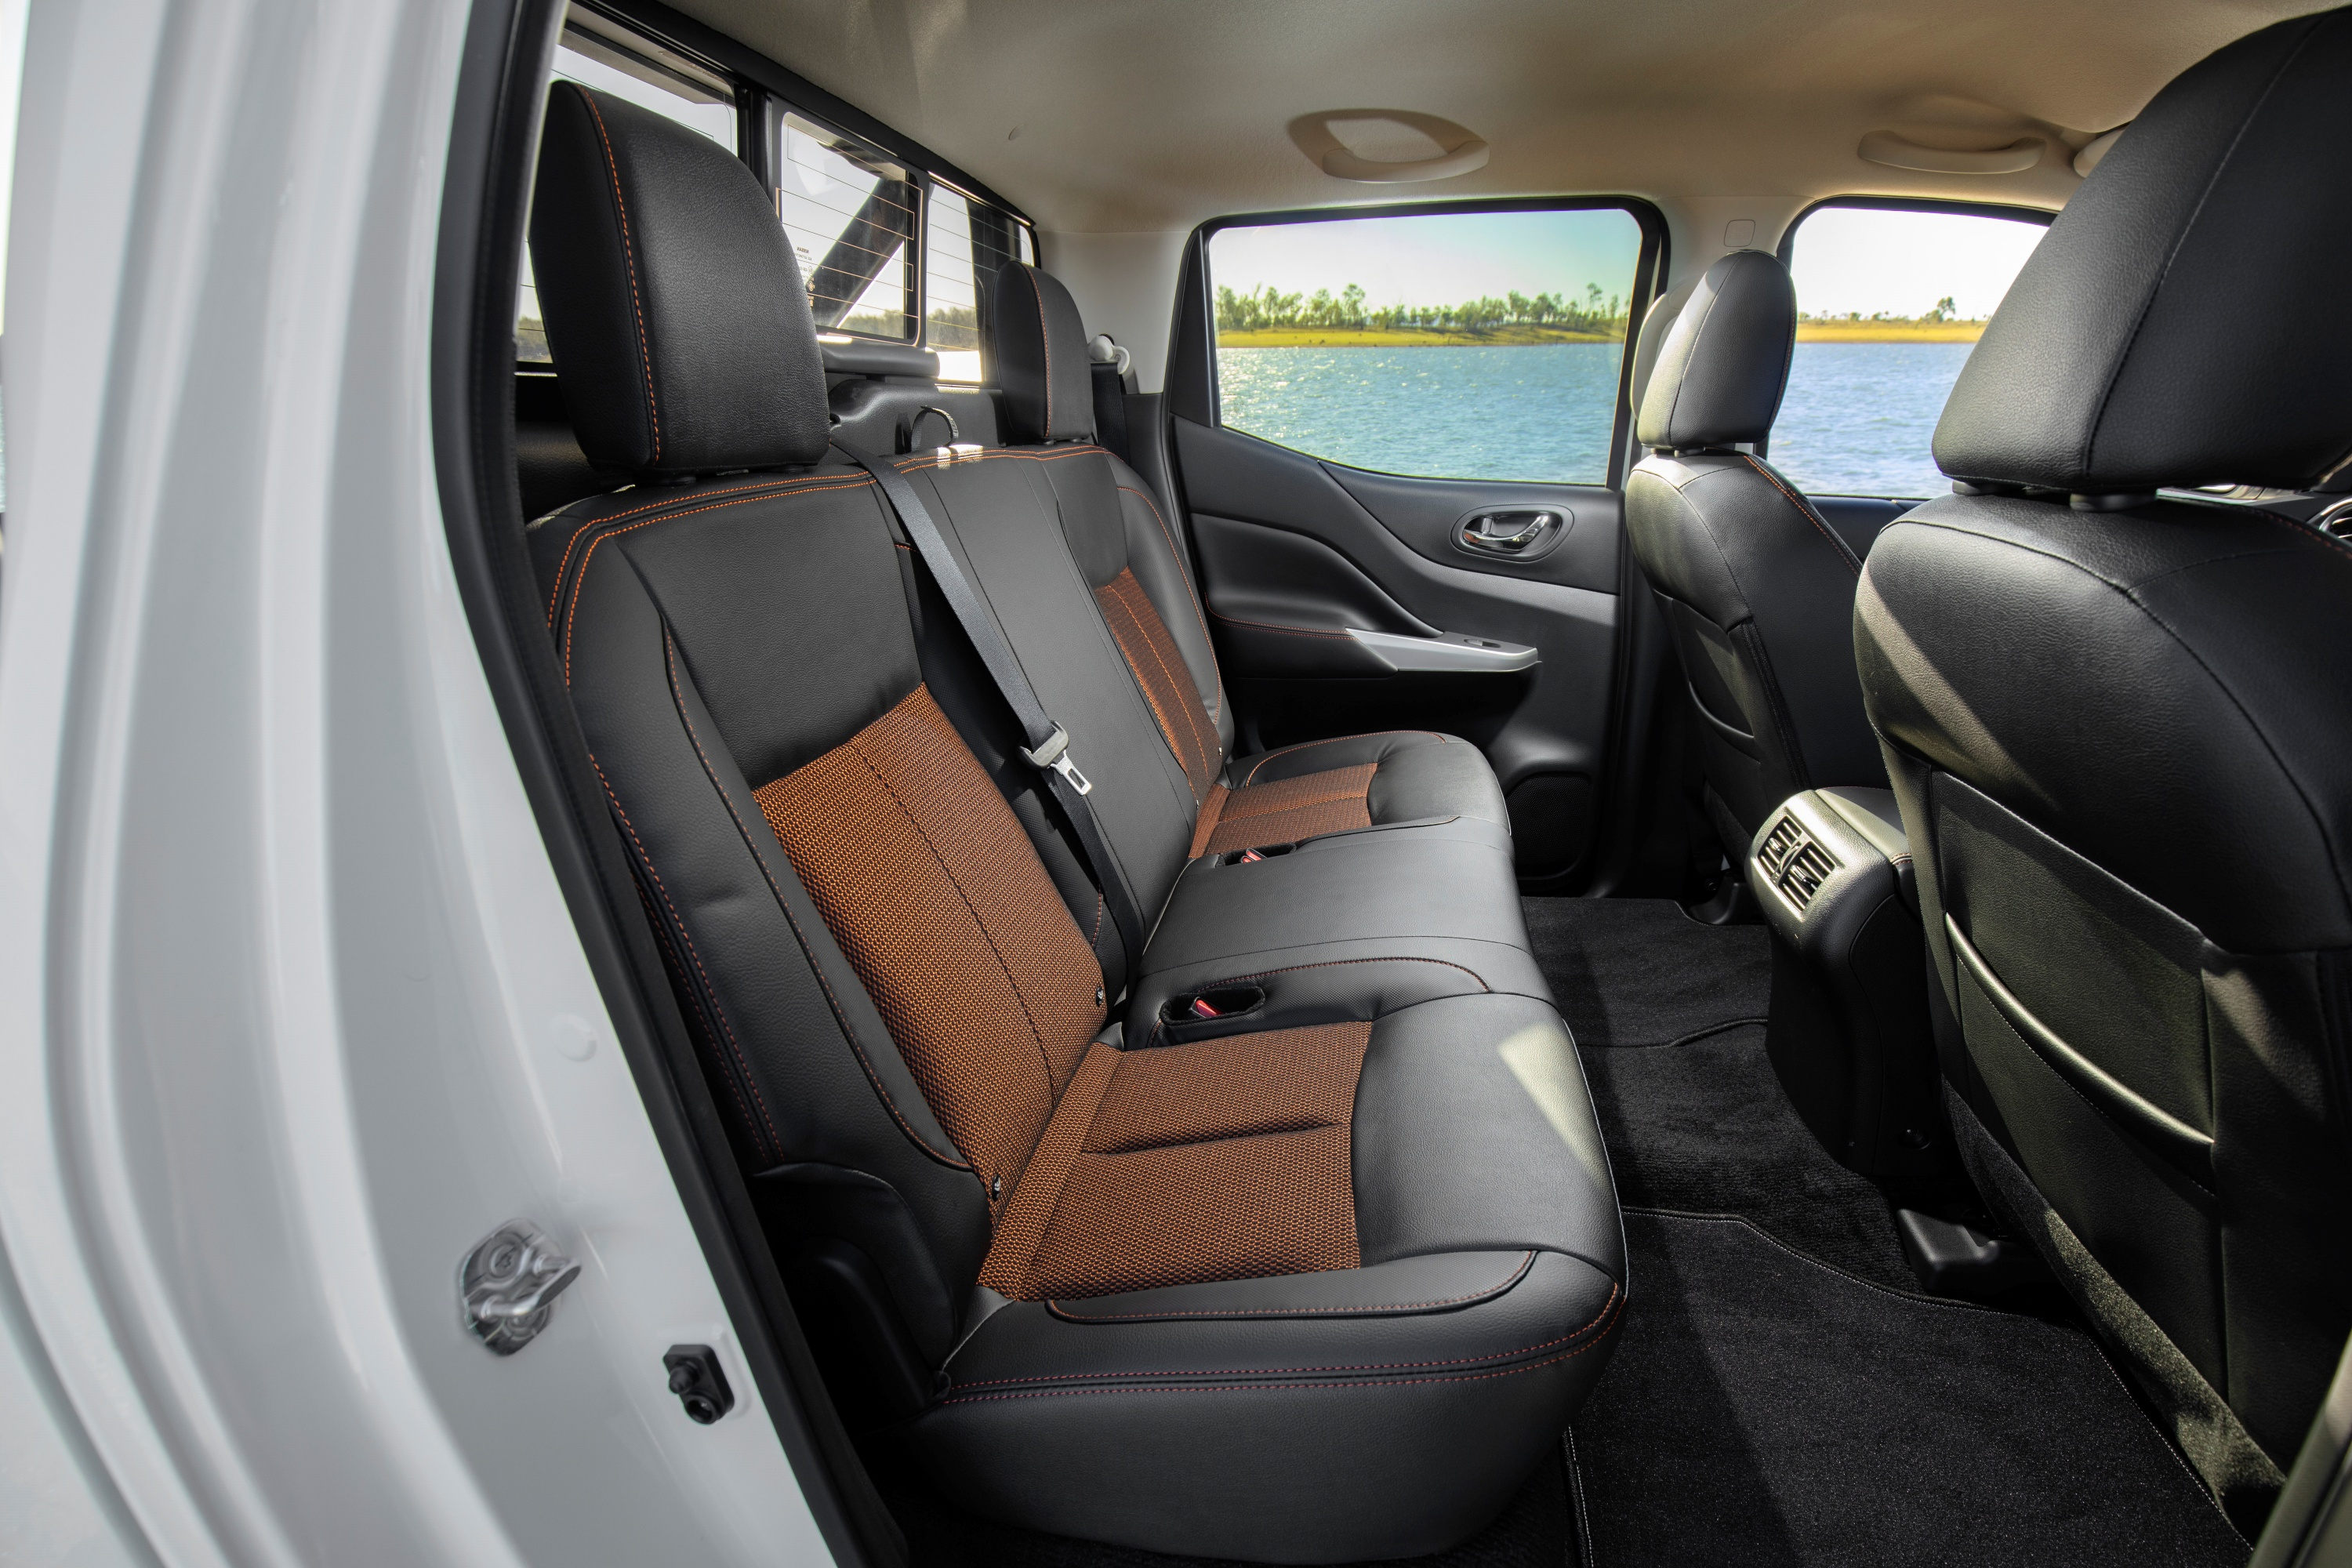 2019 Nissan Navara N-TREK rear seats